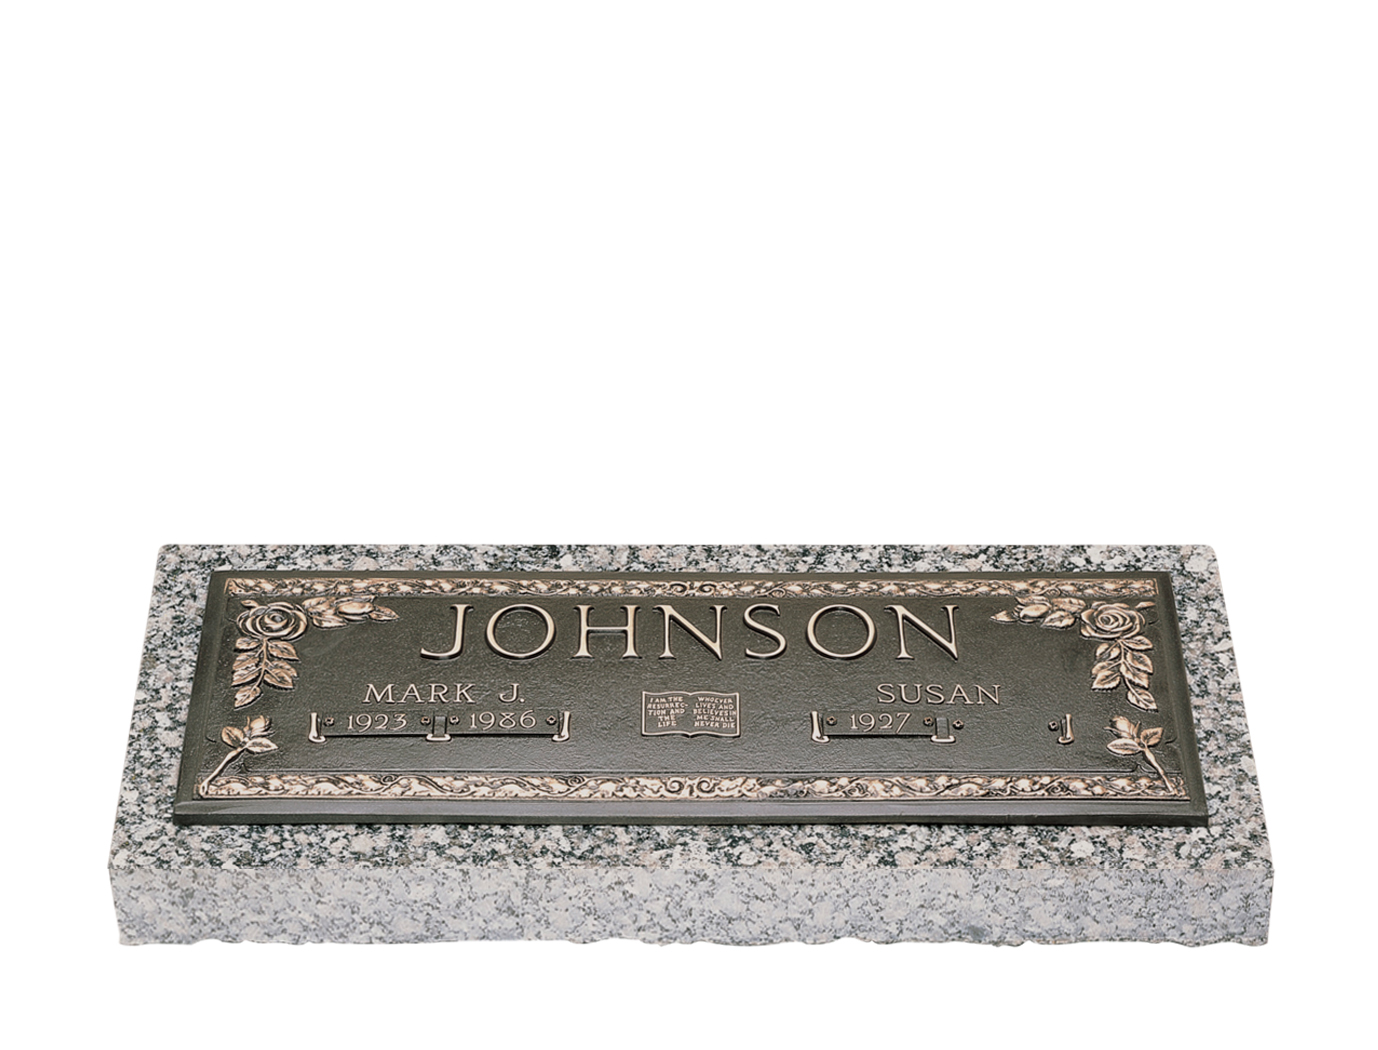 Companion bronze grave markers lovemarkers abbey rose reviewsmspy